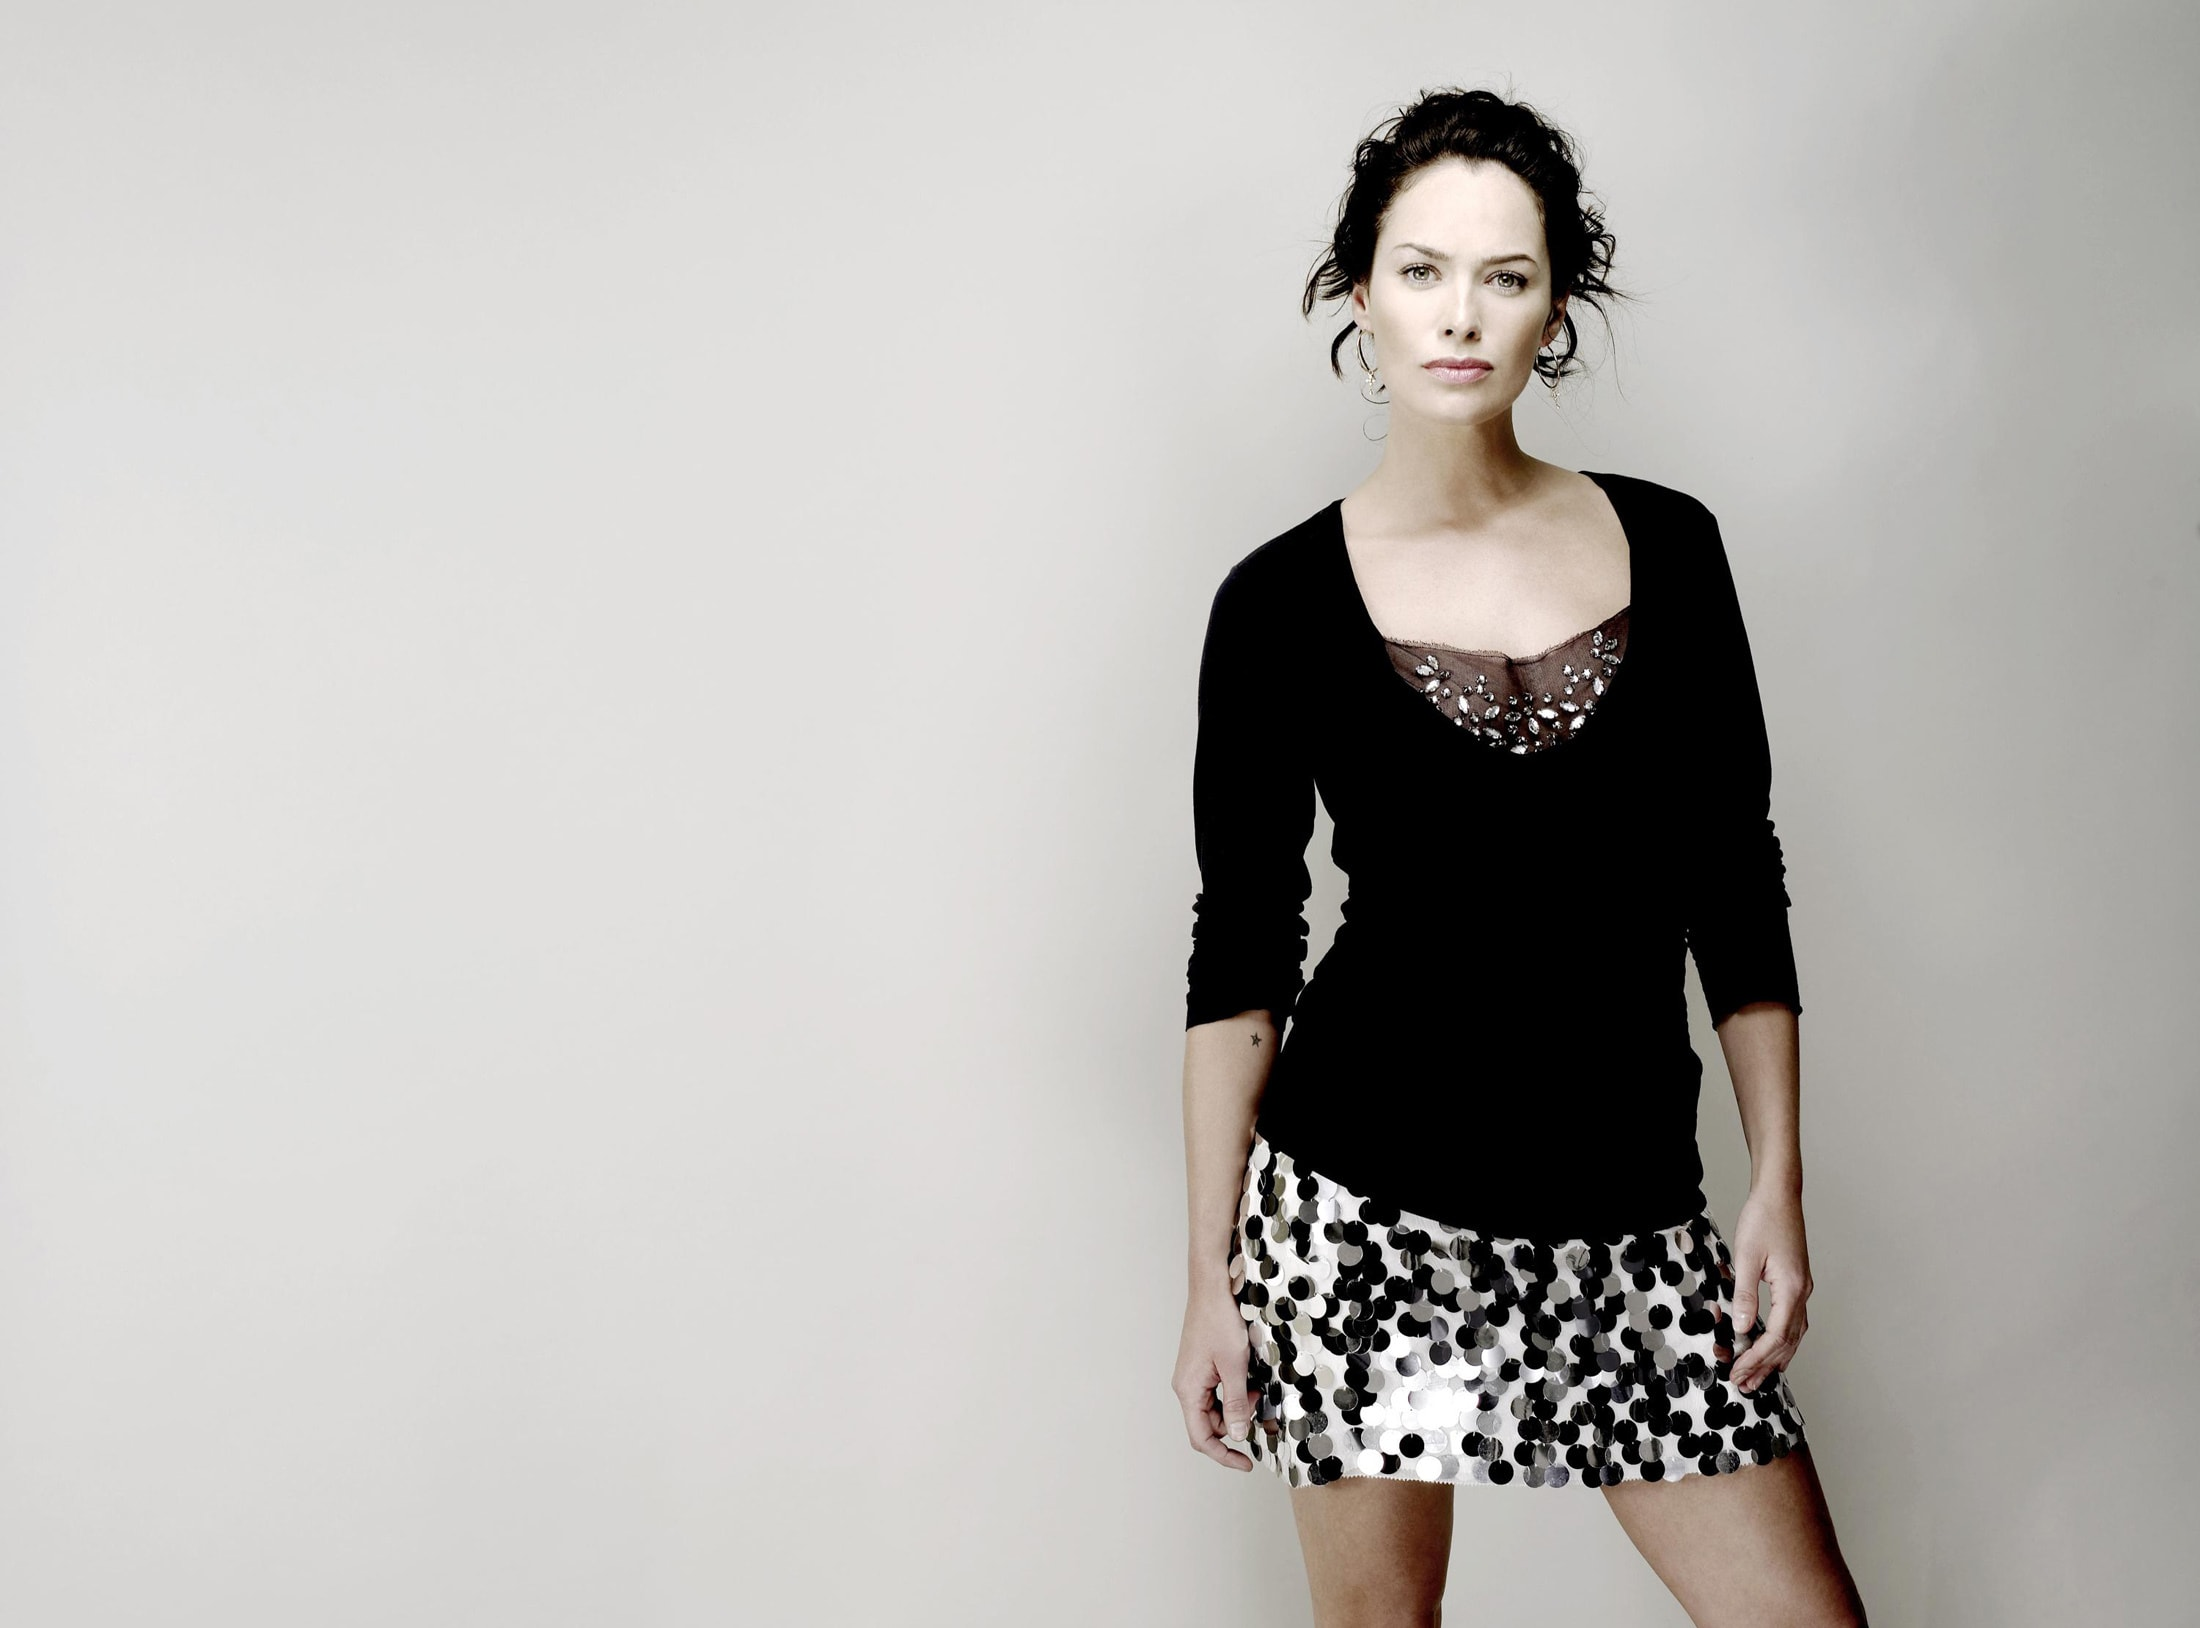 Lena Headey Download